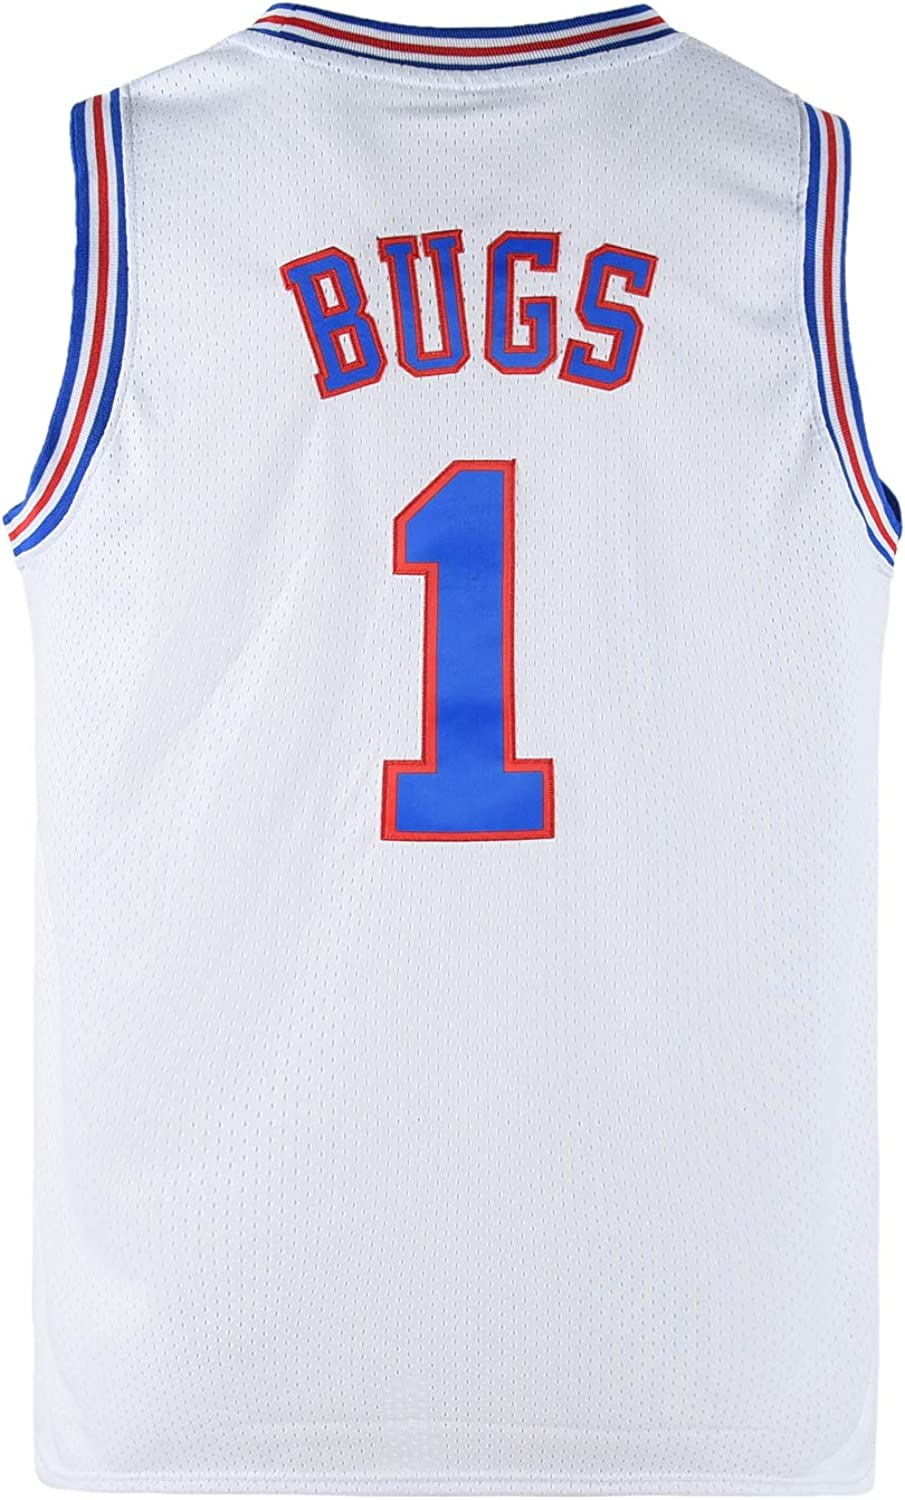 Outlet ☆ Free Shipping COMTOP Year-end gift Youth Bugs 1 Space for Basketball Movie Boy Jersey